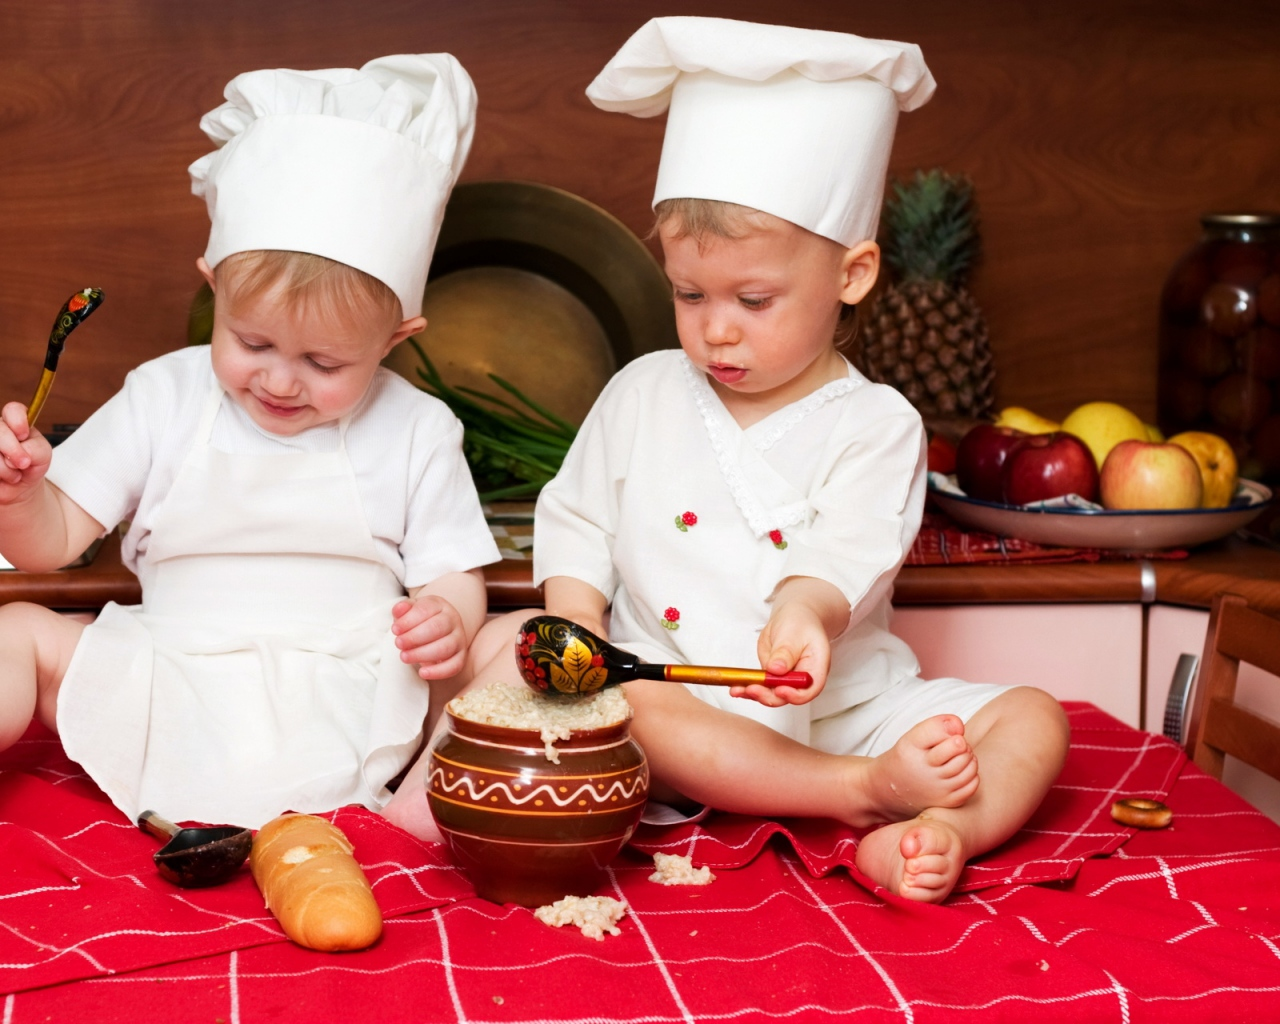 children_cook_play_food_69890_1280x1024